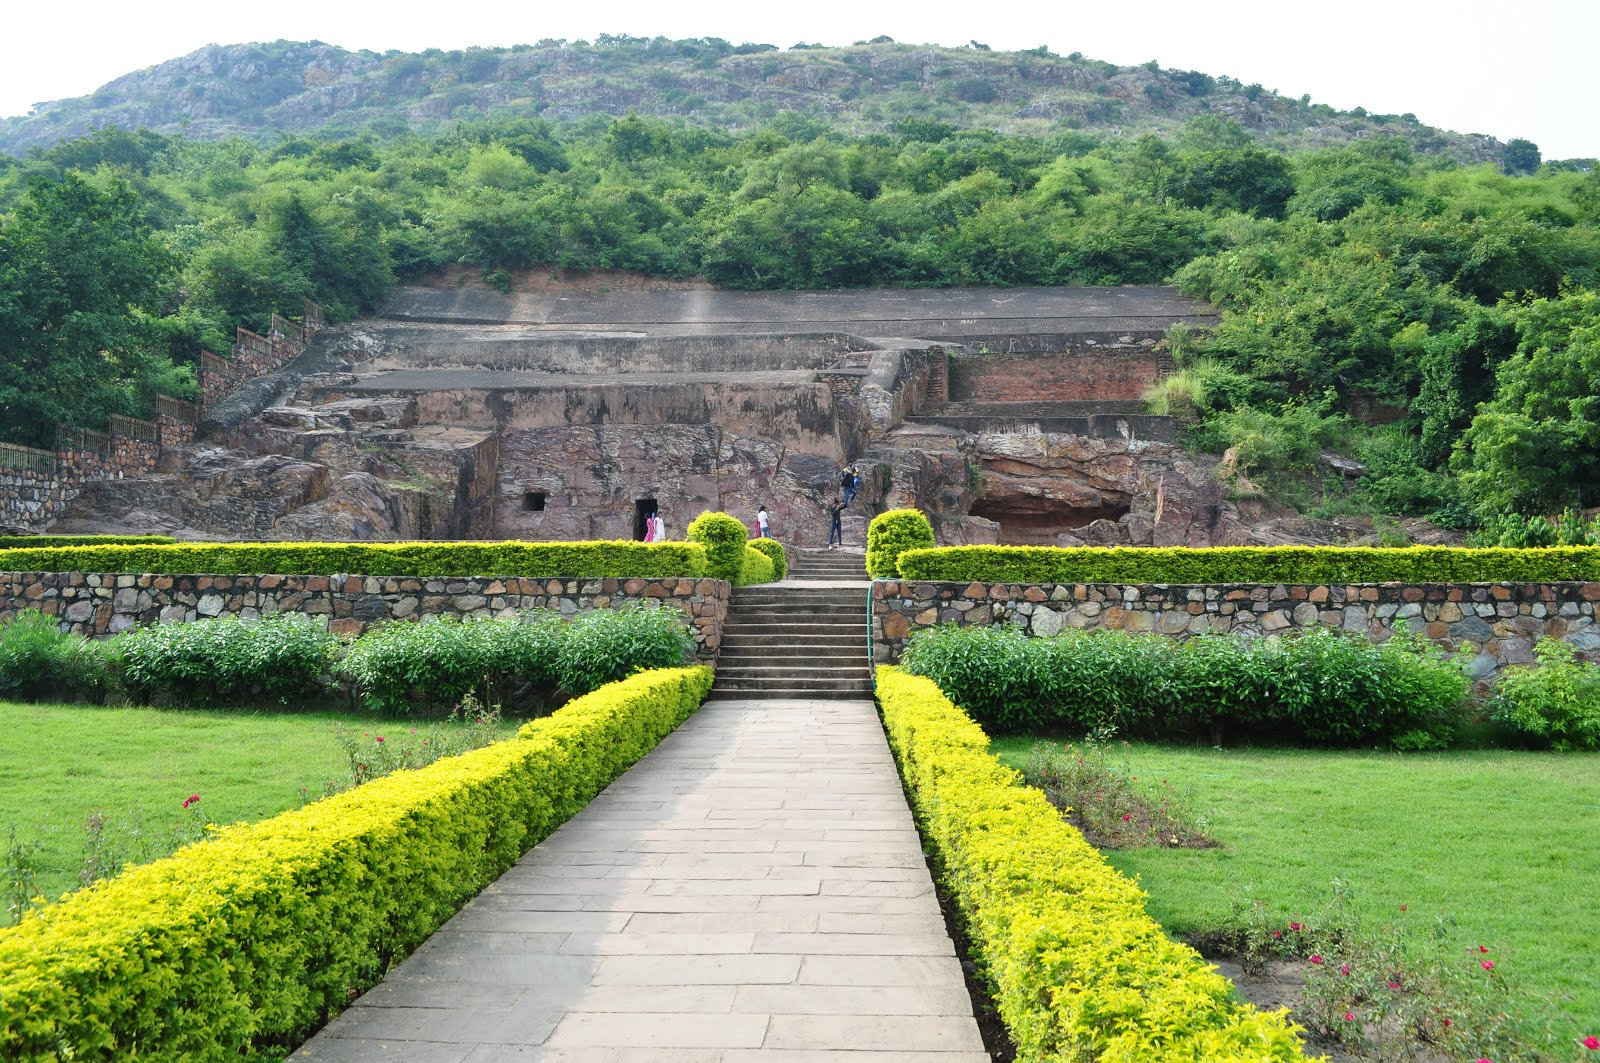 the kingdom of magadha History of india, indian history, magadha empire magadha empire  amongst the sixteen mahajanapadas, the kingdom of magadha rose to prominence under a number of dynasties that peaked in.